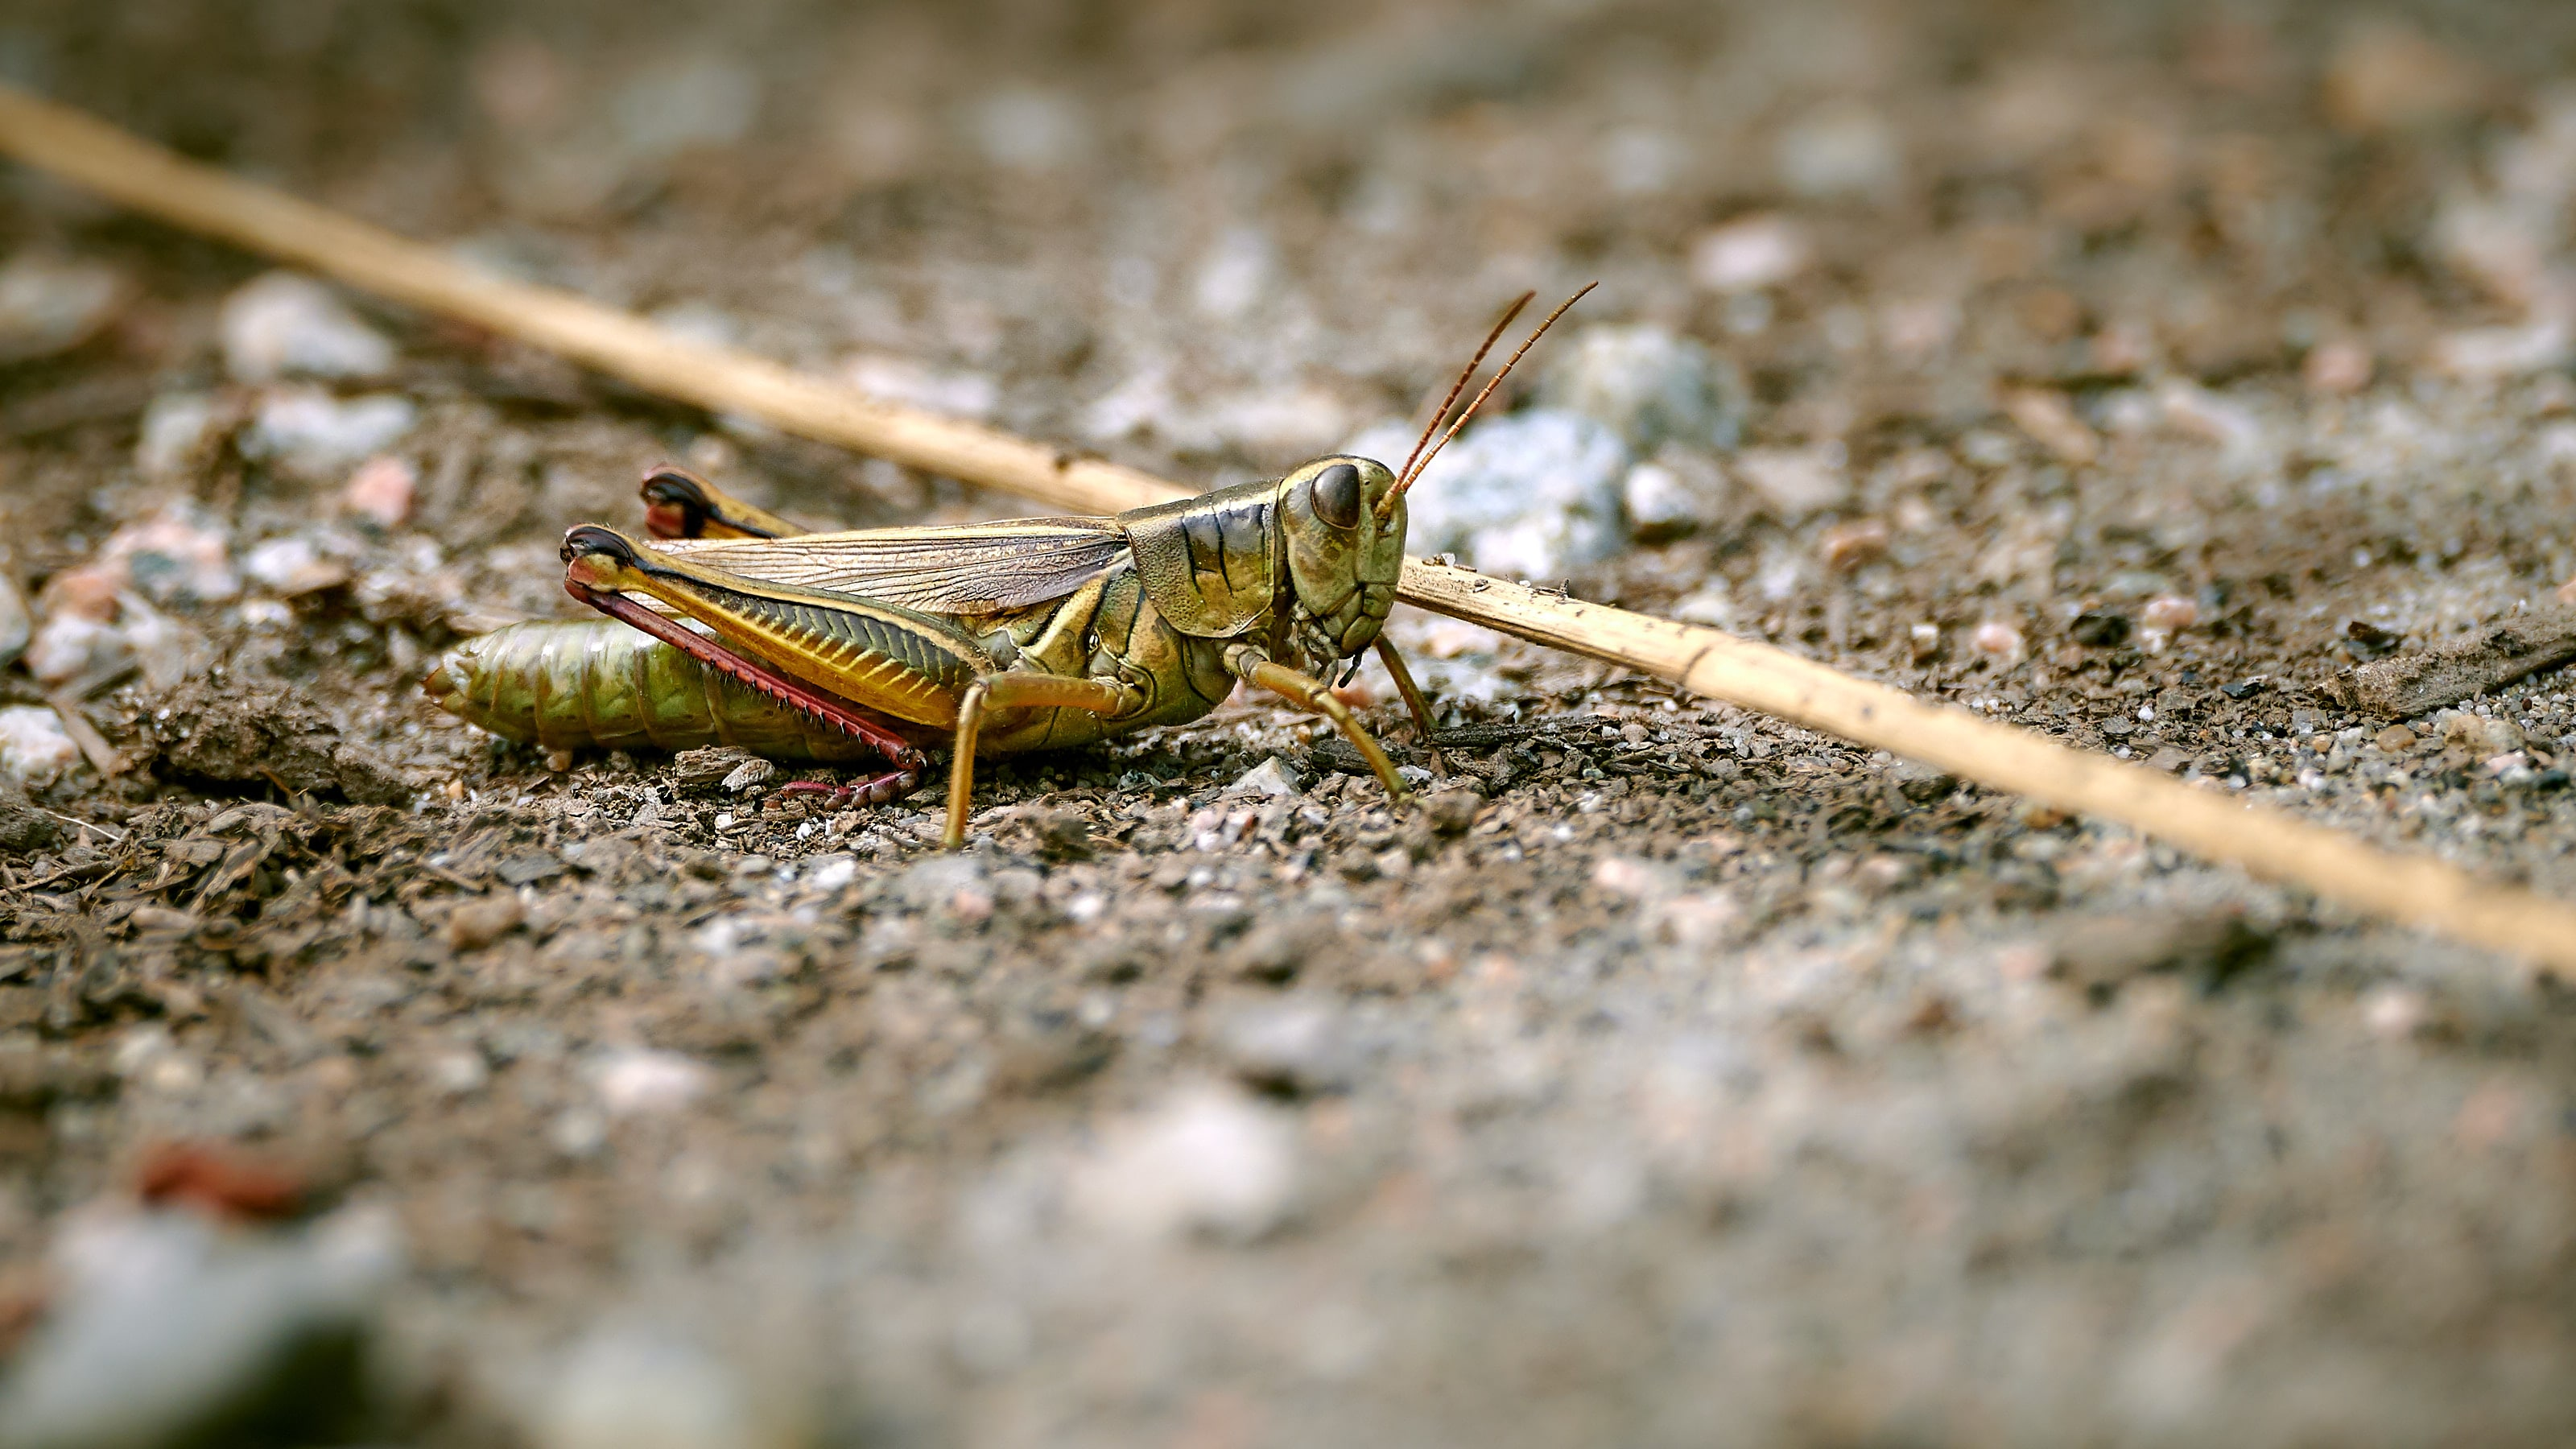 Grasshopper - Nikon Z7 and Nikkor 500mm f/5.6 PF VR